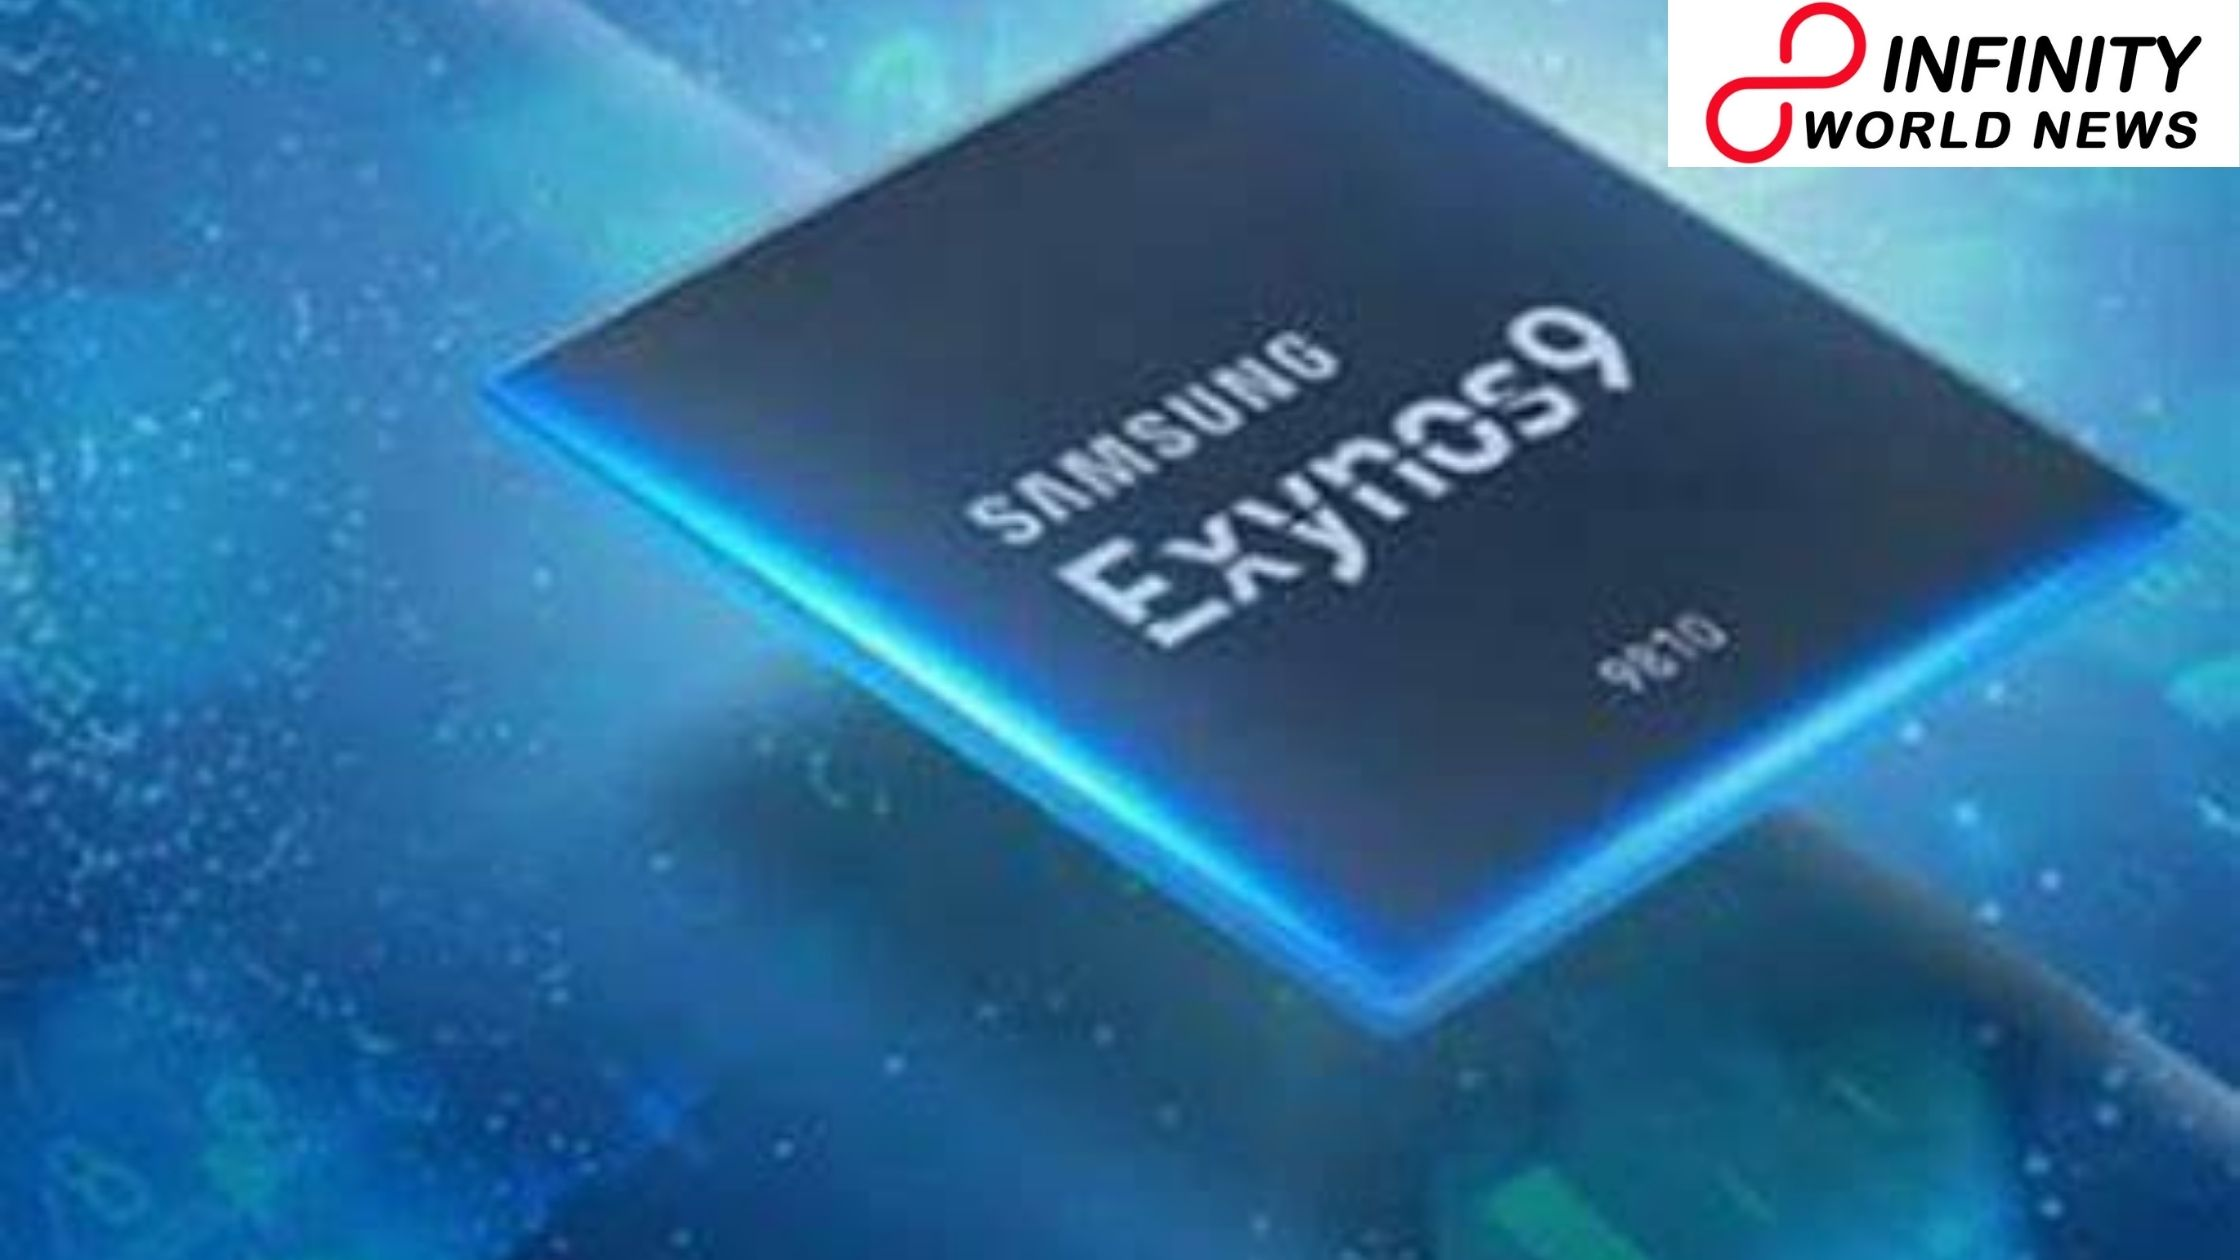 South Korea's chip sends out tipped to outperform $100bn in 2021